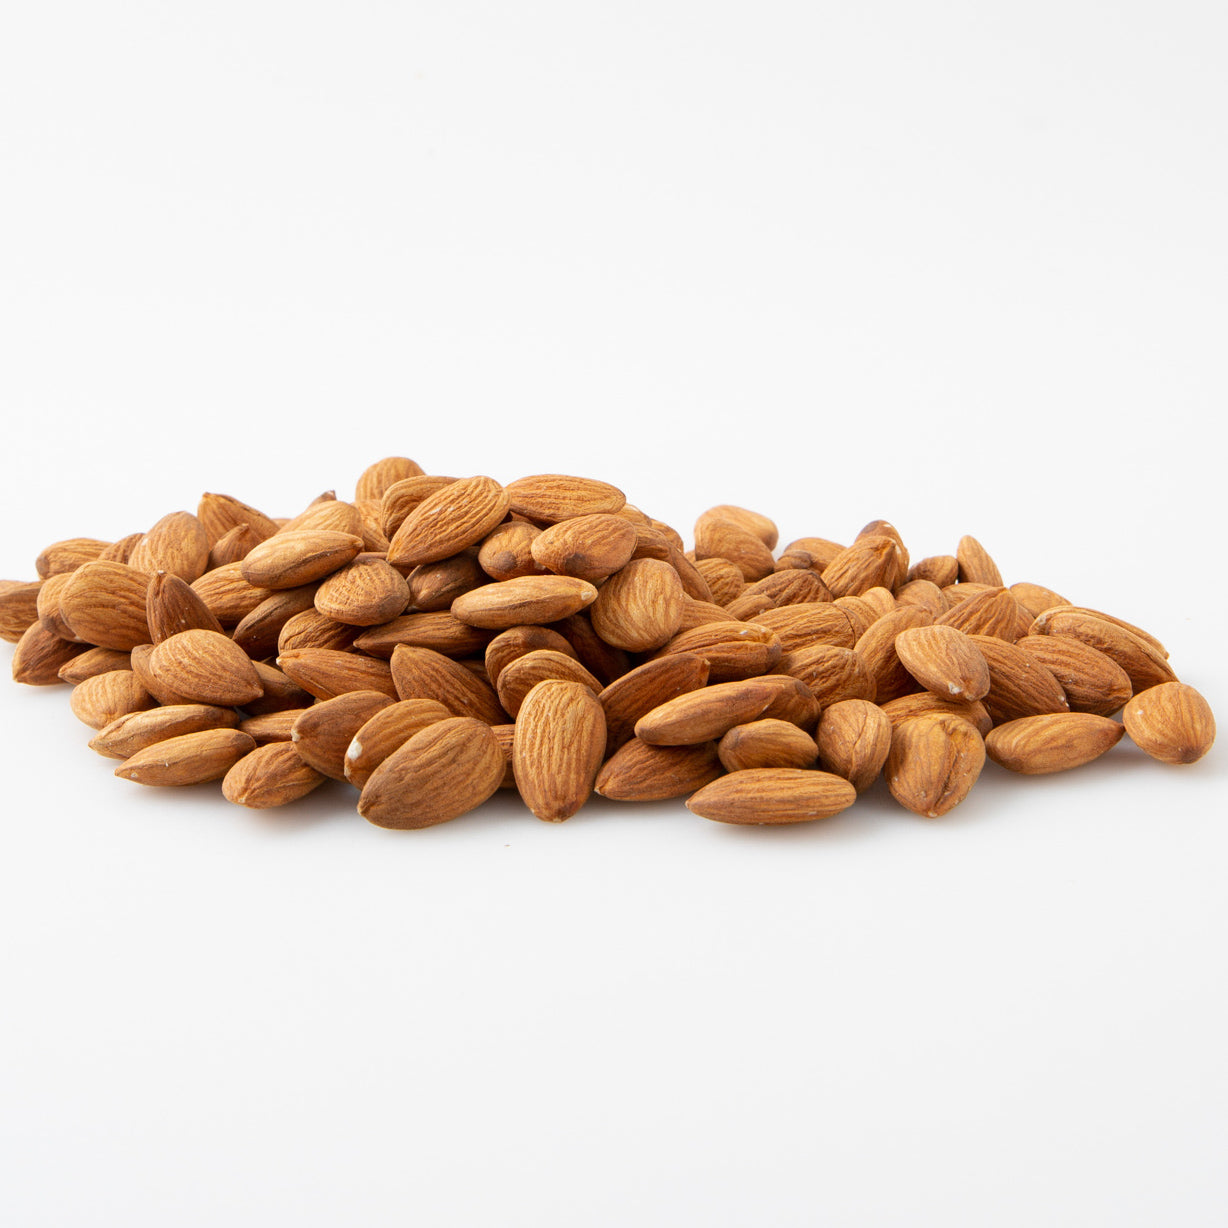 Pesticide Free Almonds